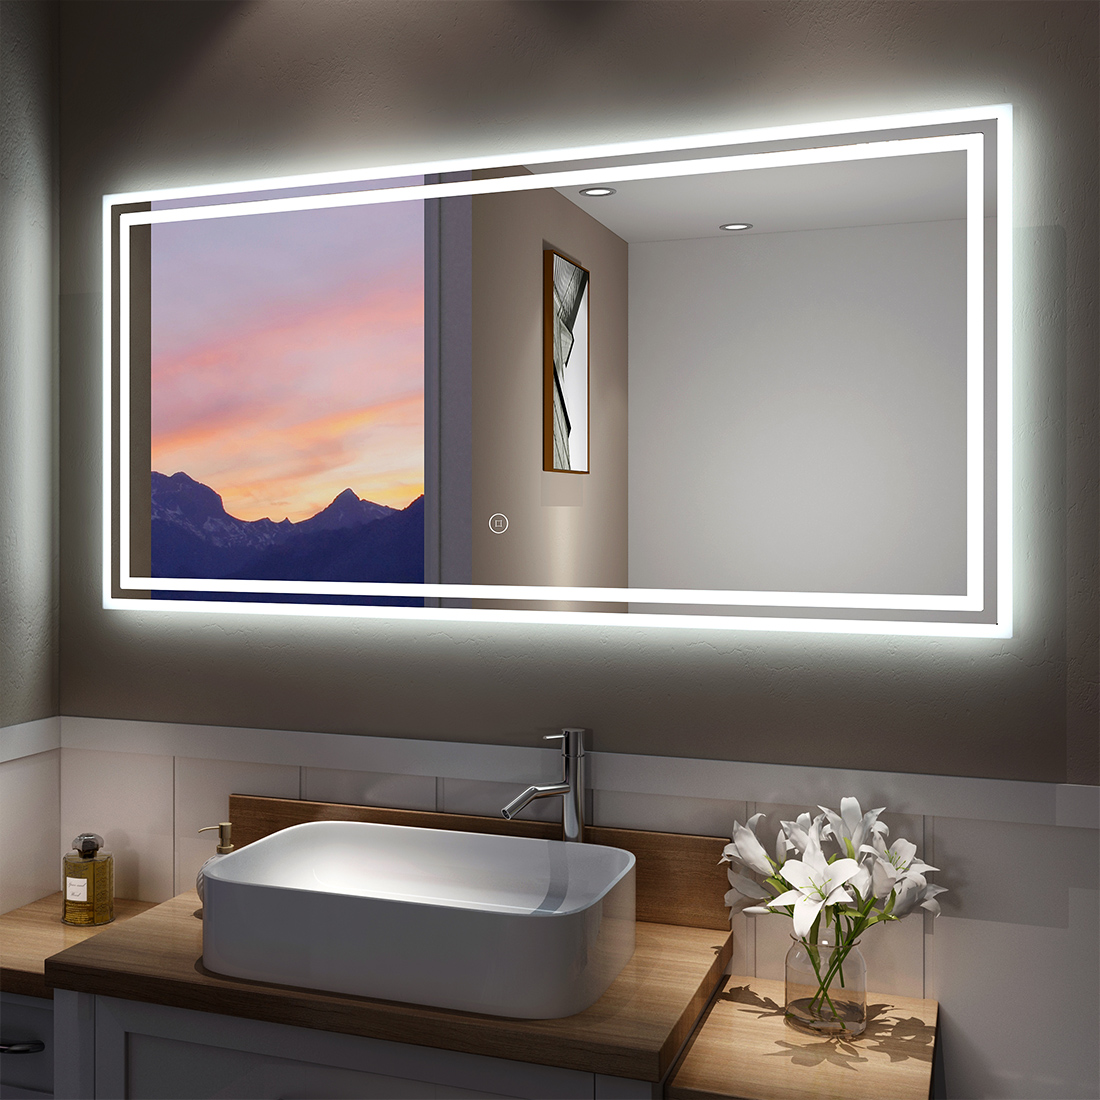 Details About Led Bathroom Lighted Mirror Illuminated Wall Touch Light Vanity Makeup 48 X24